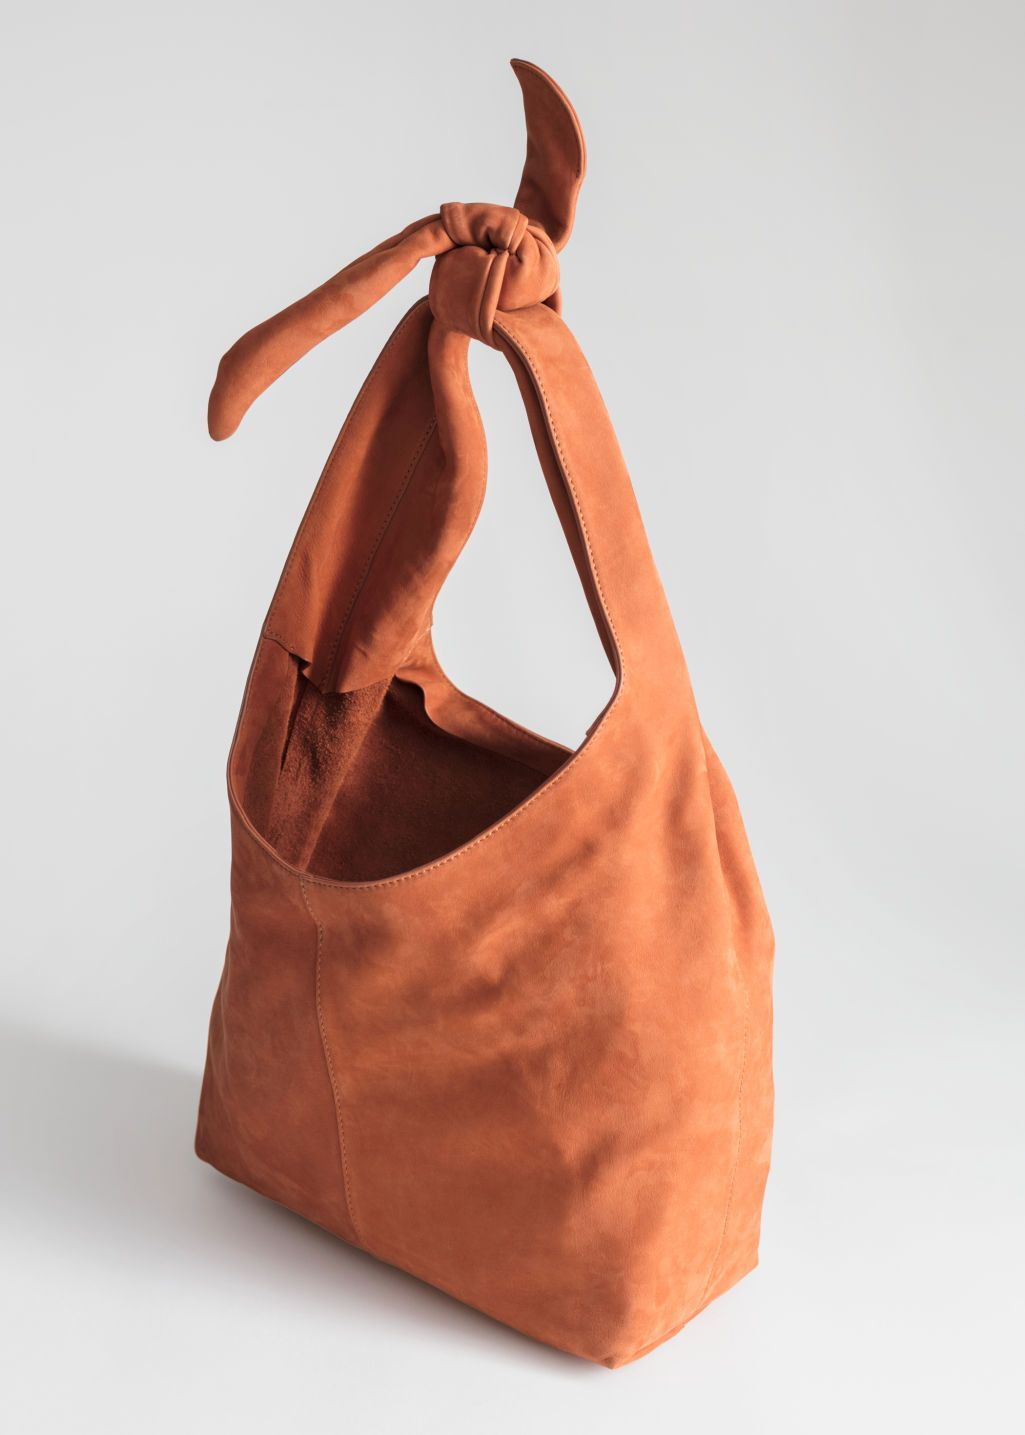 Download Soft Suede Tie Up Bag Bags Hobo Tote Bag Soft Suede